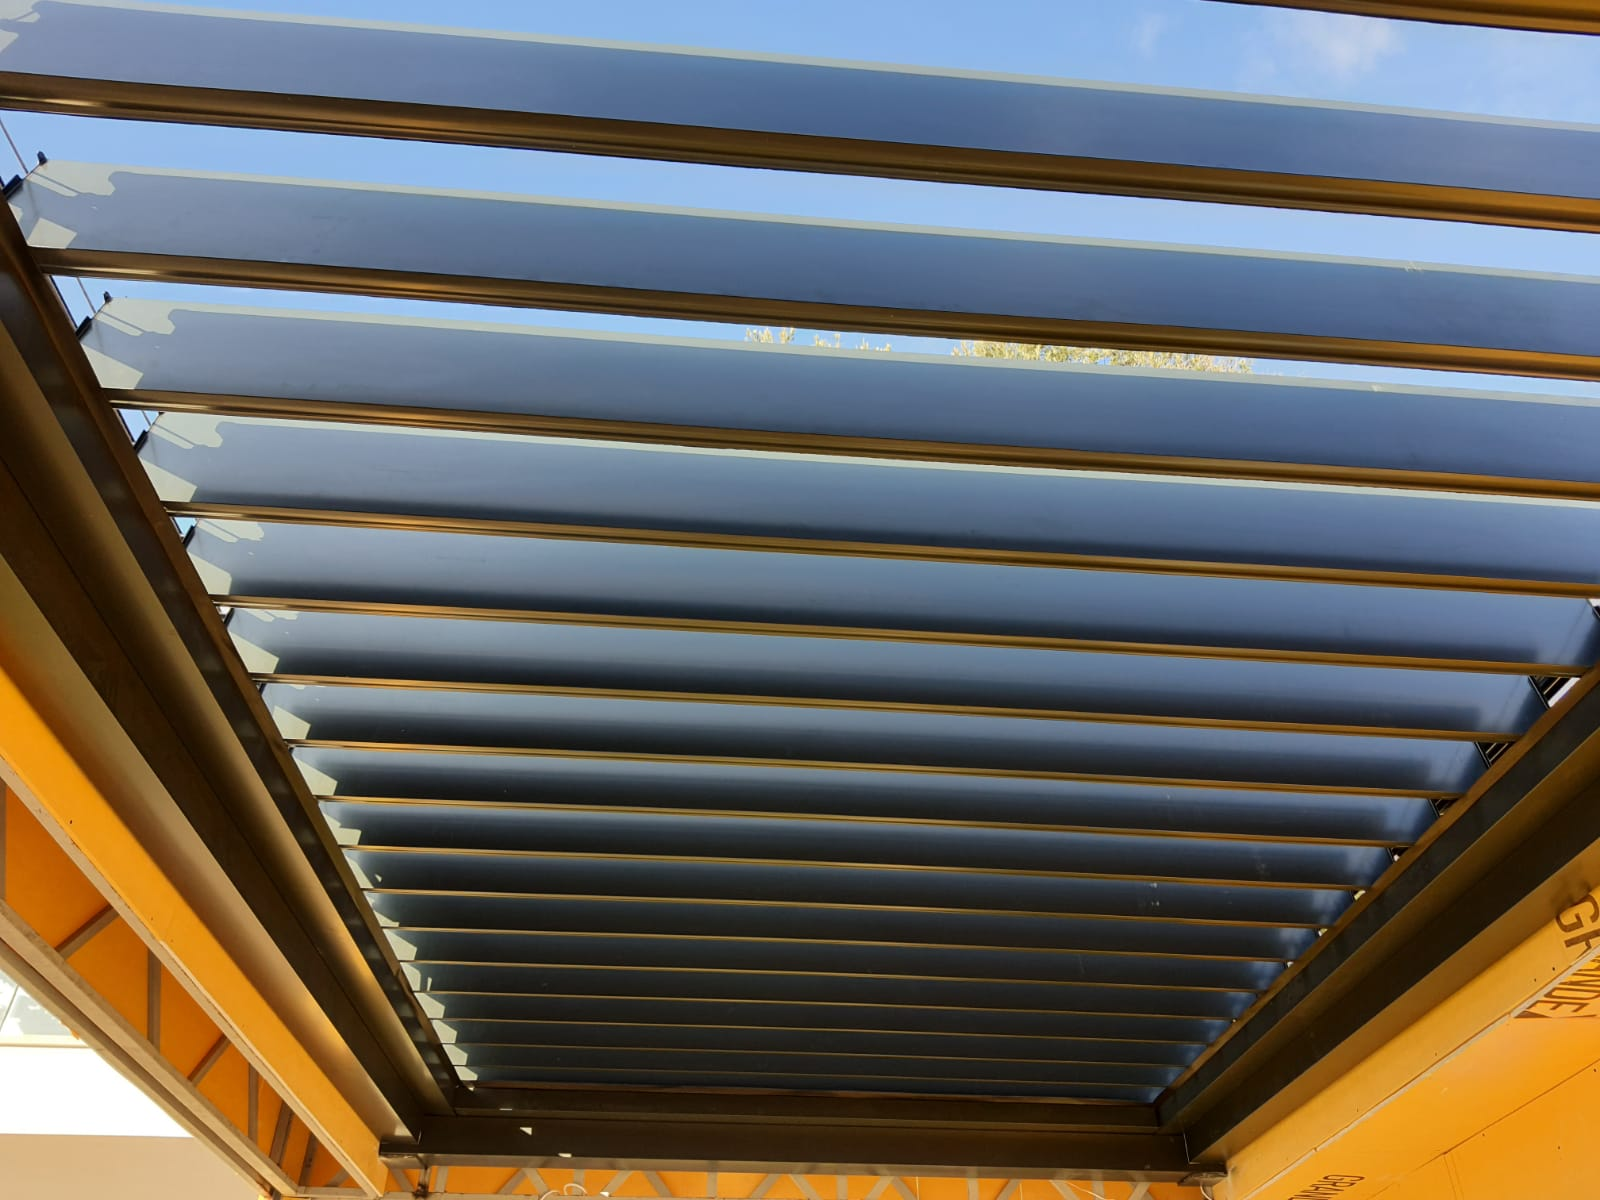 PRO DİJİTAL ROLLİNG ROOF (BİOCLİMATİC SYSTEM)